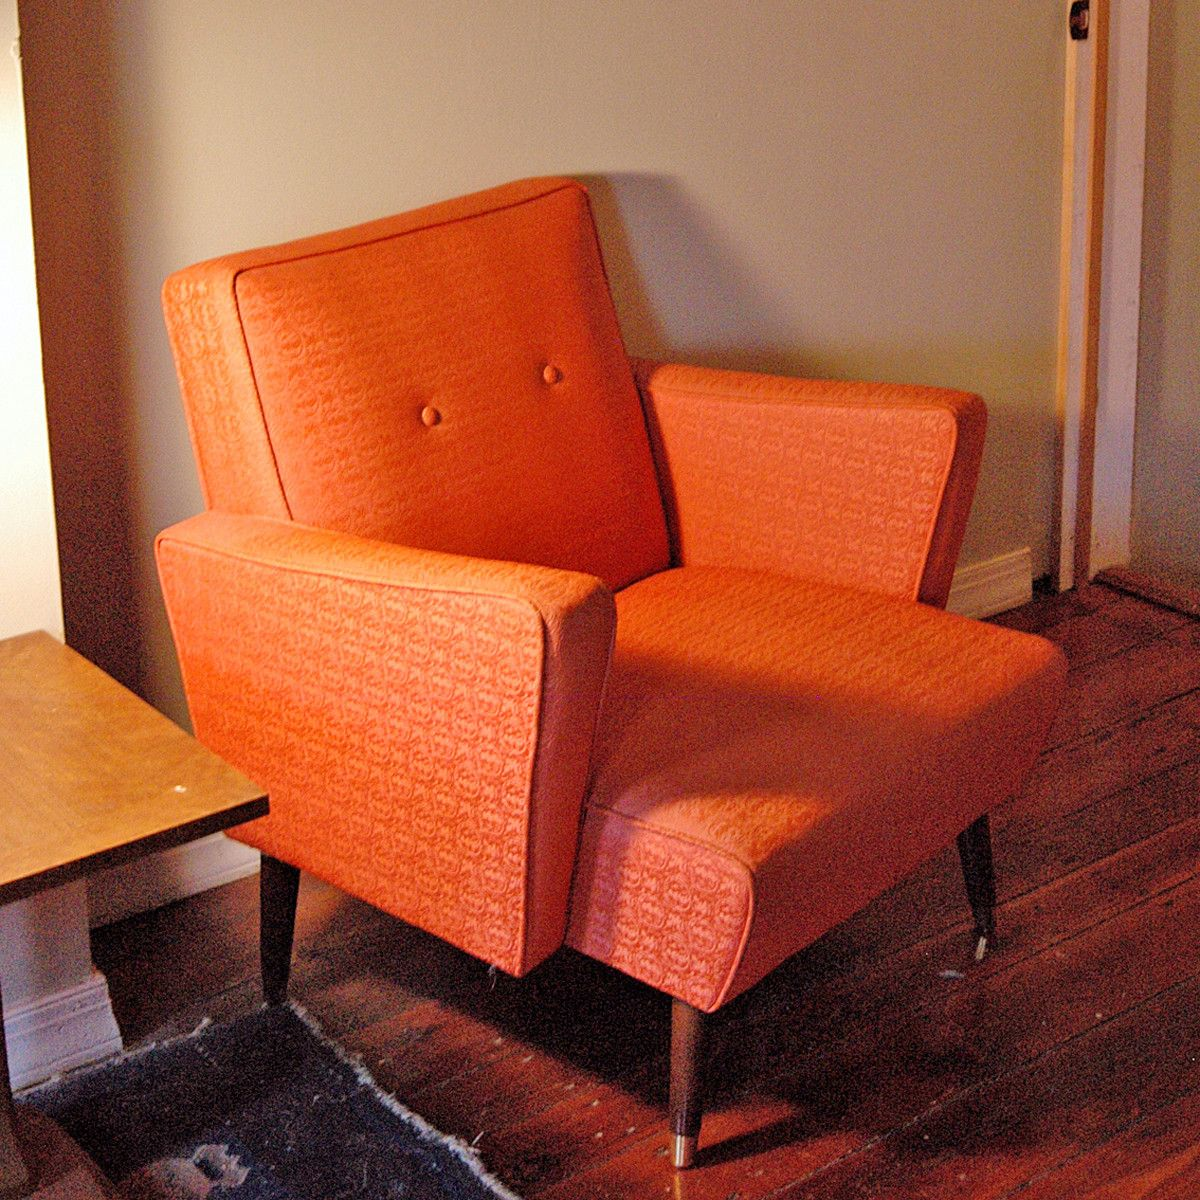 Orange Mid Century Modern Chair Mid Century Modern Chair Orange 조아